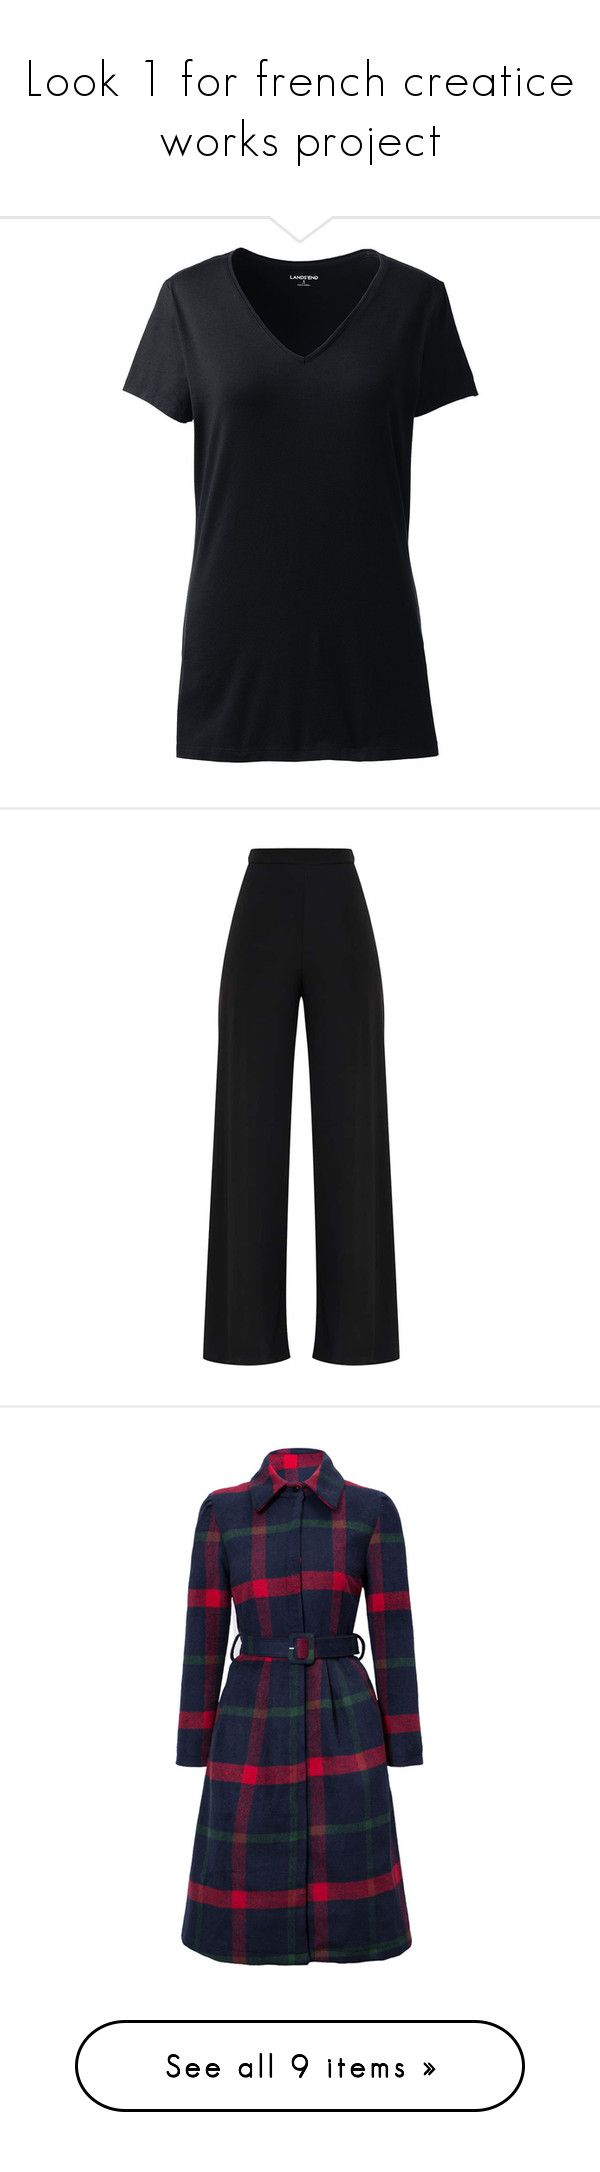 """""""Look 1 for french creatice works project"""" by jasminmorley01 on Polyvore featuring plus size women's fashion, plus size clothing, plus size tops, plus size t-shirts, tops, black, layered t shirt, vneck t shirts, stretch v neck tee and double layer tee"""